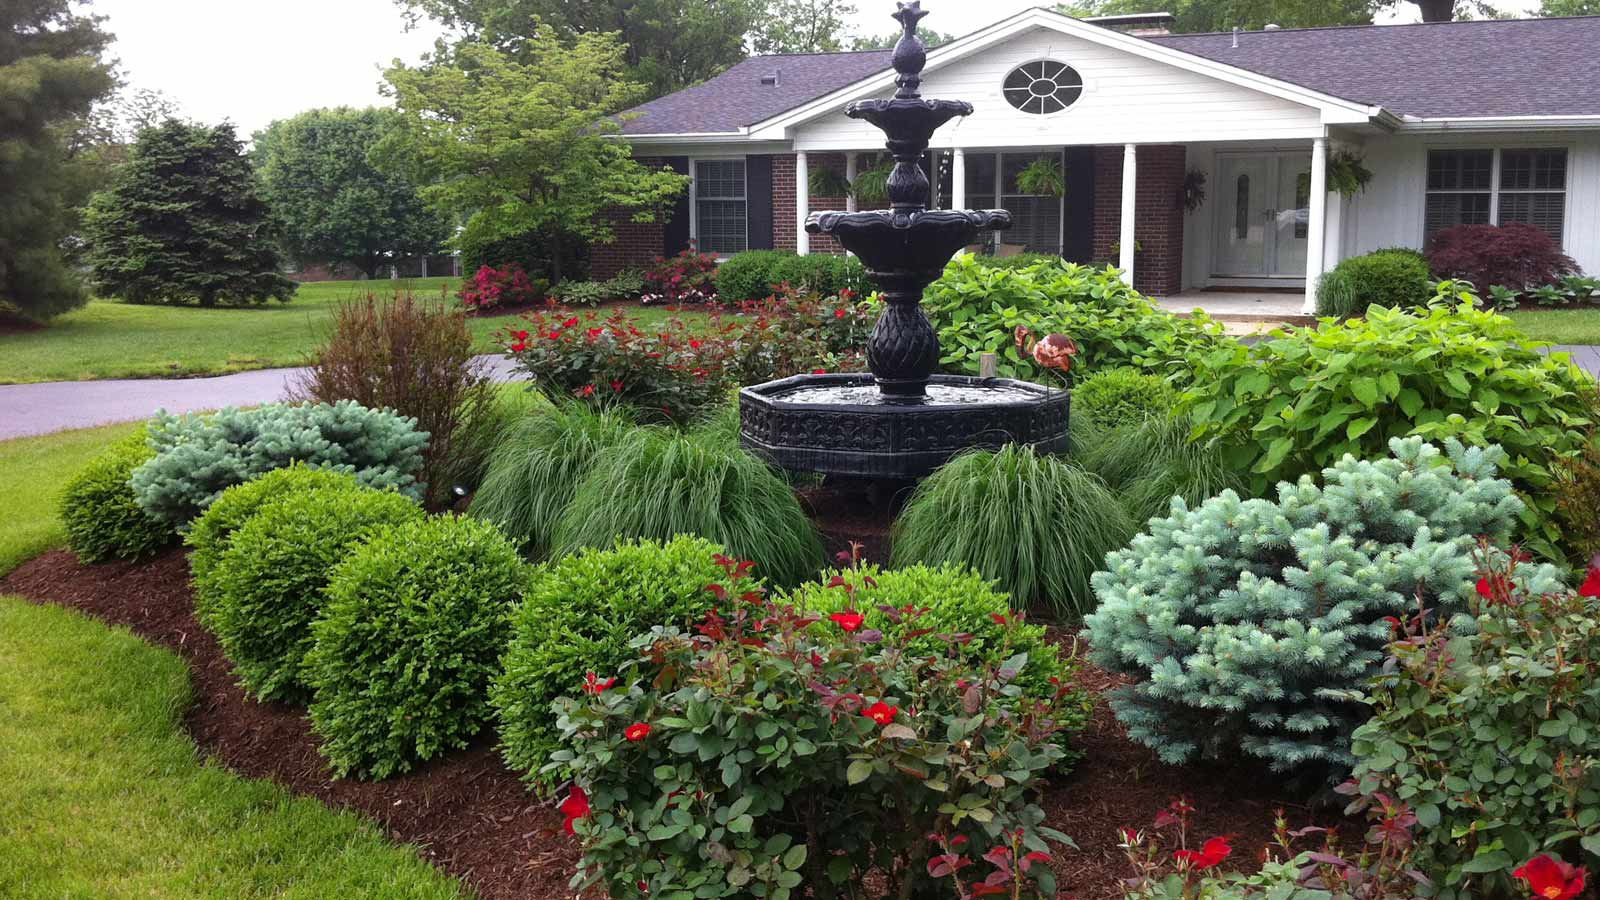 Residential Landscaping-Carrollton TX Landscape Designs & Outdoor Living Areas-We offer Landscape Design, Outdoor Patios & Pergolas, Outdoor Living Spaces, Stonescapes, Residential & Commercial Landscaping, Irrigation Installation & Repairs, Drainage Systems, Landscape Lighting, Outdoor Living Spaces, Tree Service, Lawn Service, and more.